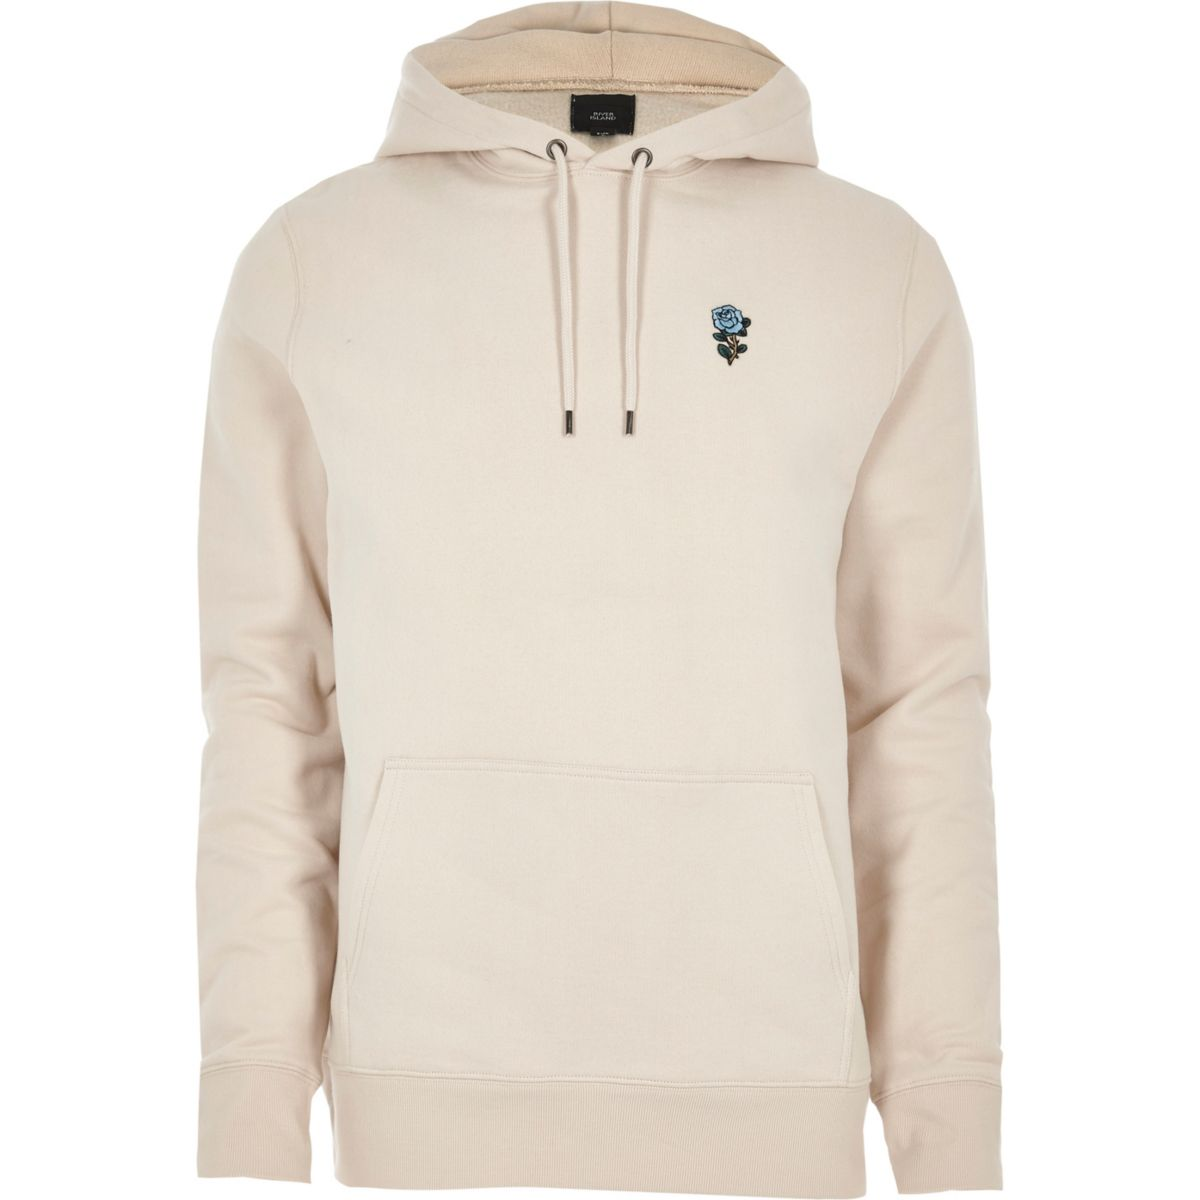 Stone rose embroidered hoodie